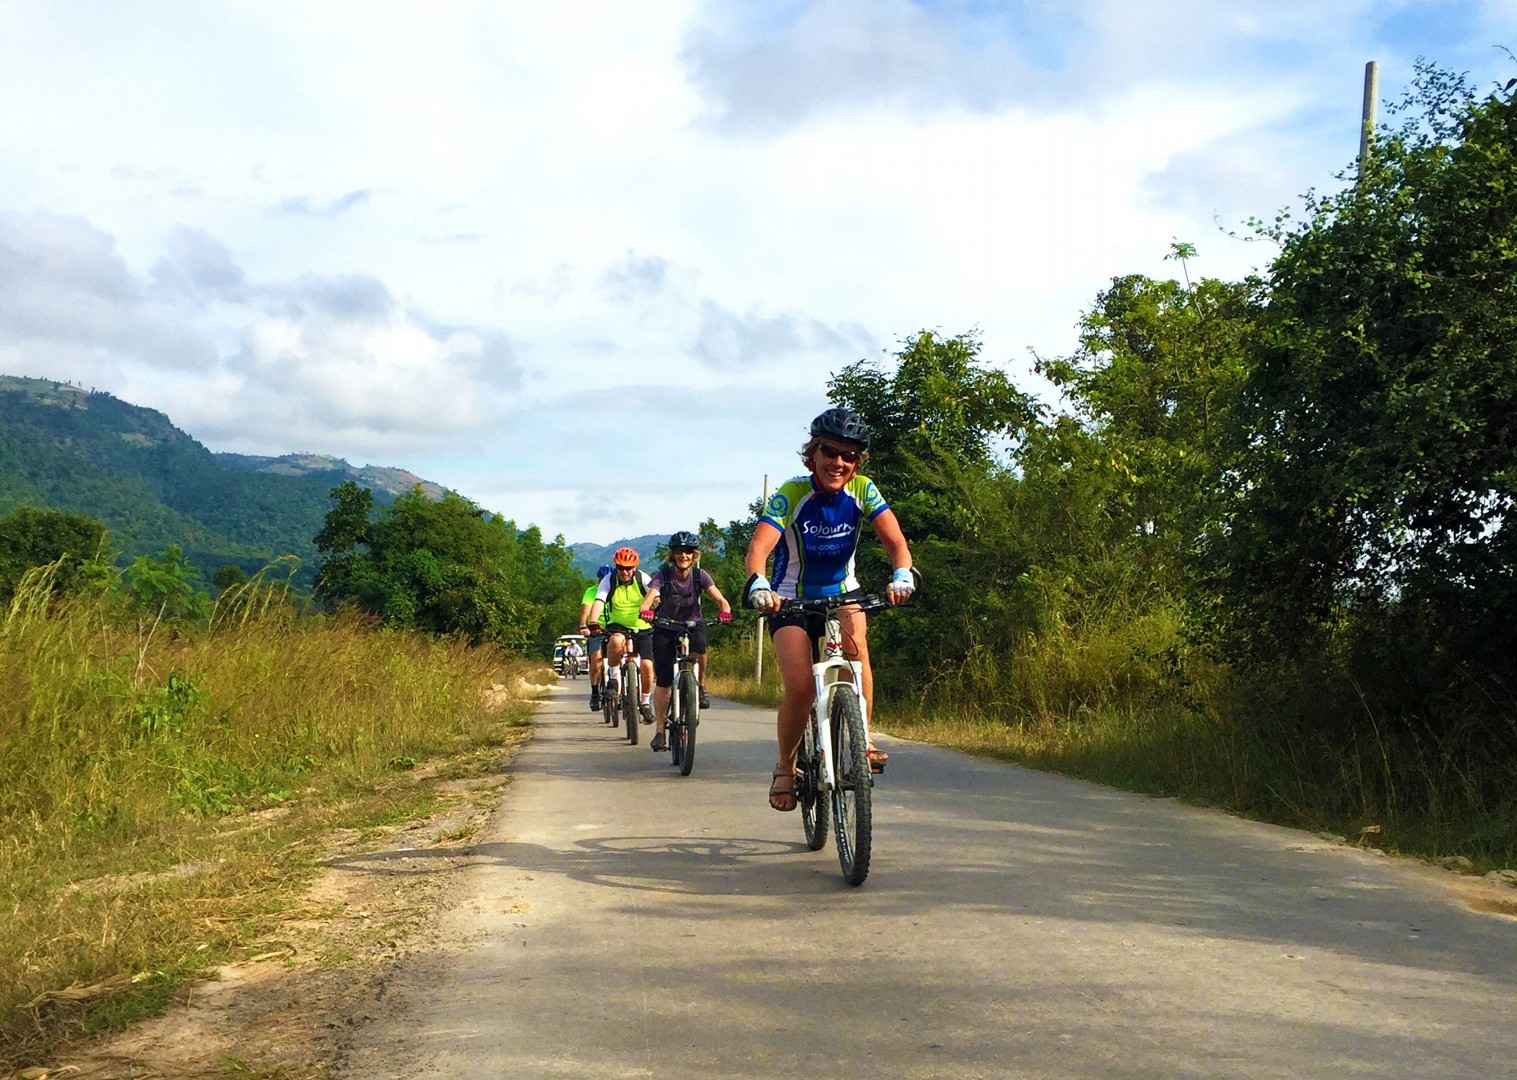 group-cycling-adventure-countryside-burma.jpg - Burma - Bagan and Beyond - Cycling Adventures